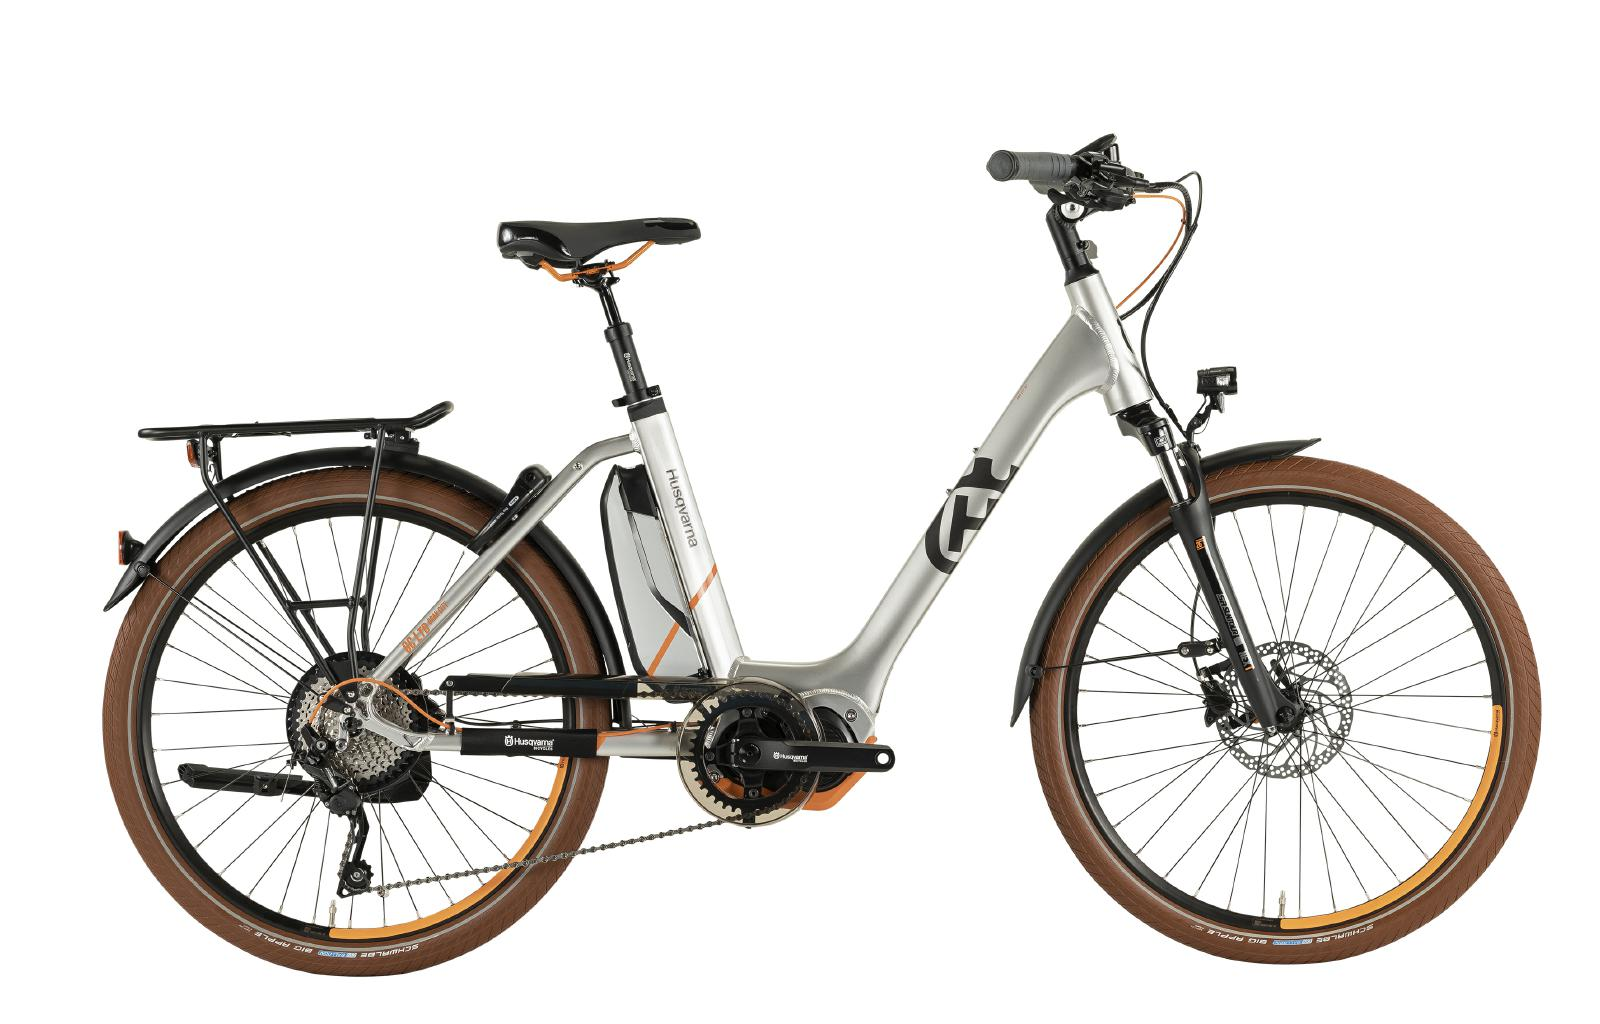 Husqvarna 2019 Gran City Anniversary Model GC LTD - silver